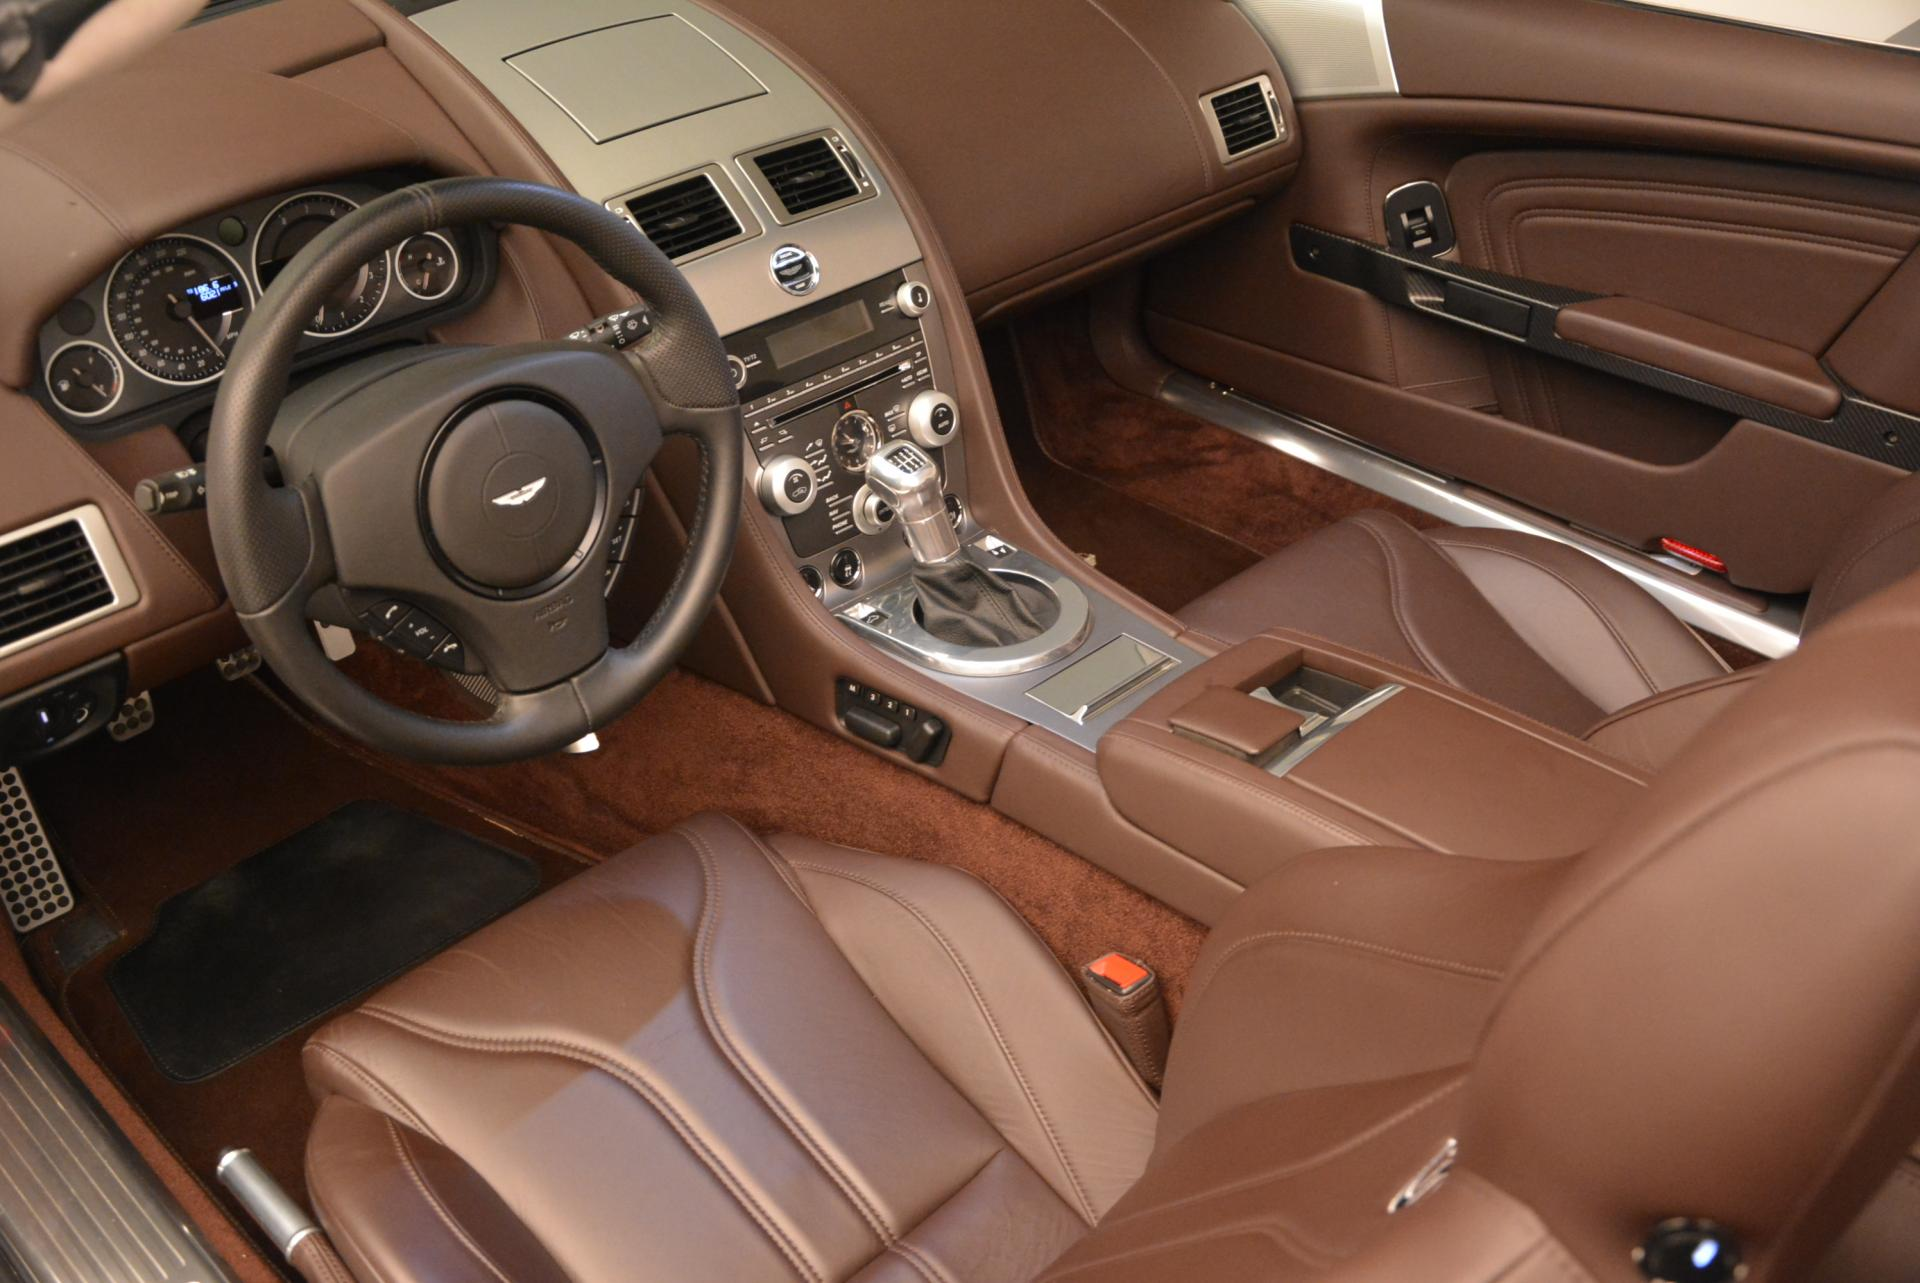 Used 2010 Aston Martin DBS Volante For Sale In Westport, CT 87_p27